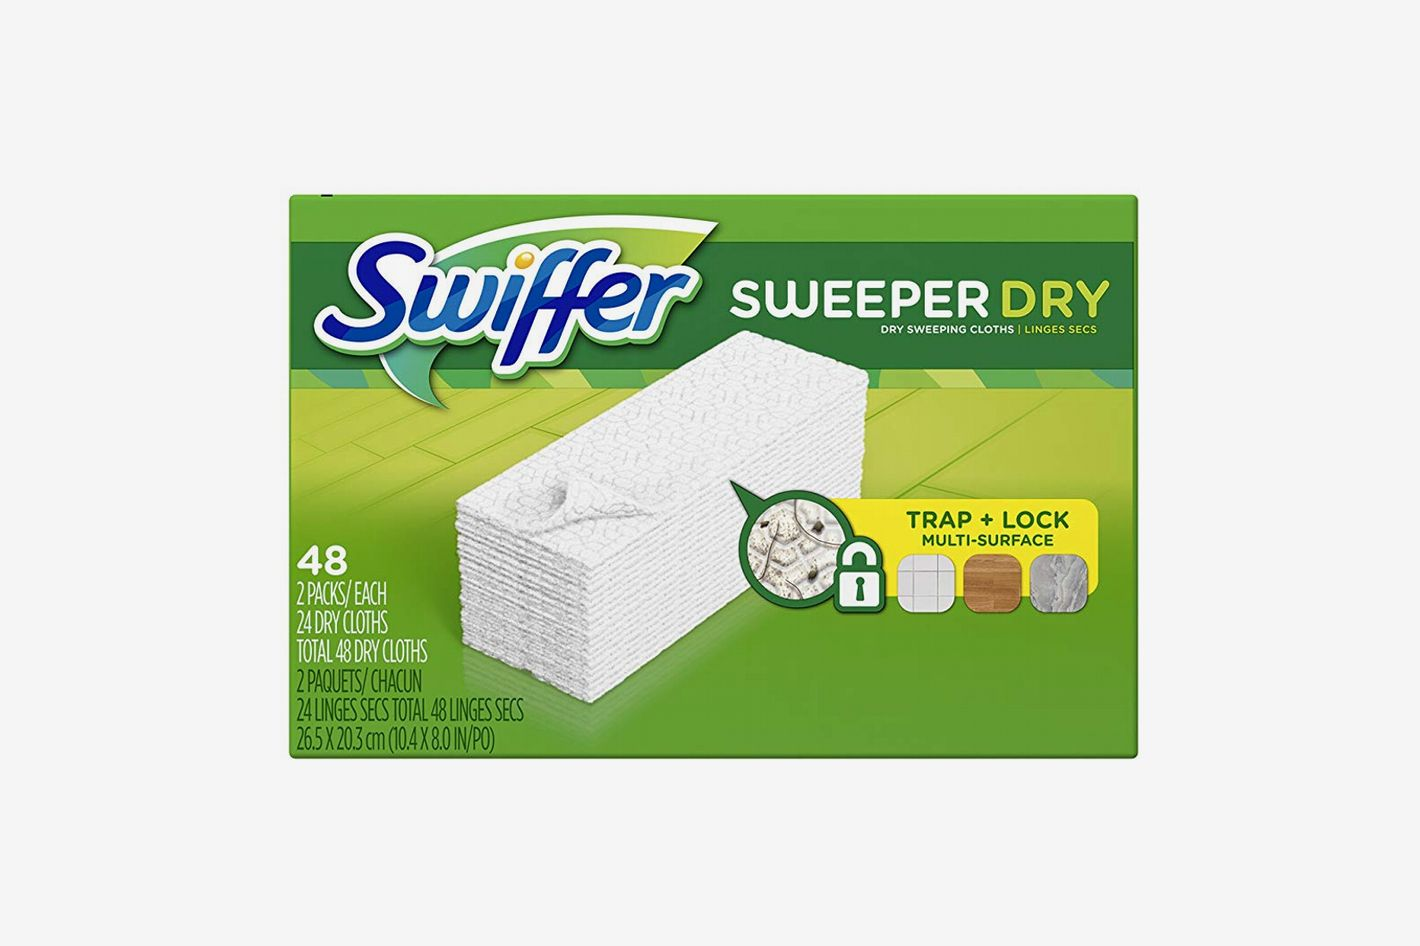 Swiffer Sweeper Dry Sweeping Cloth Refills, 48-Count